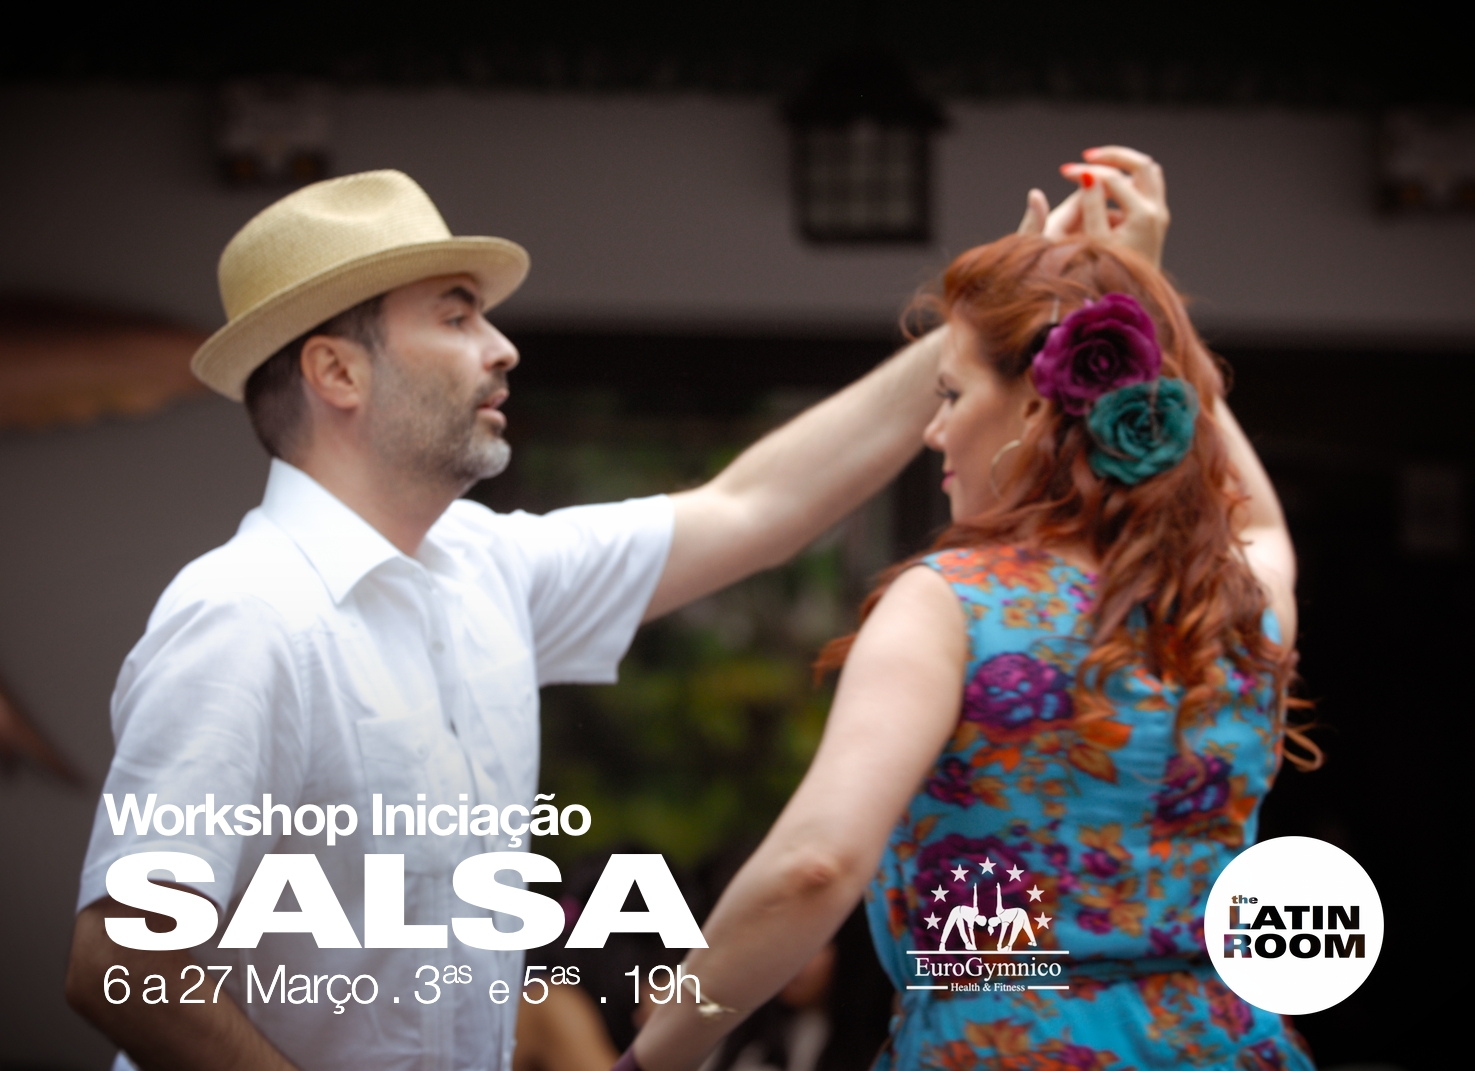 Salsa Workshop - Funchal, Madeira - The Latin Room